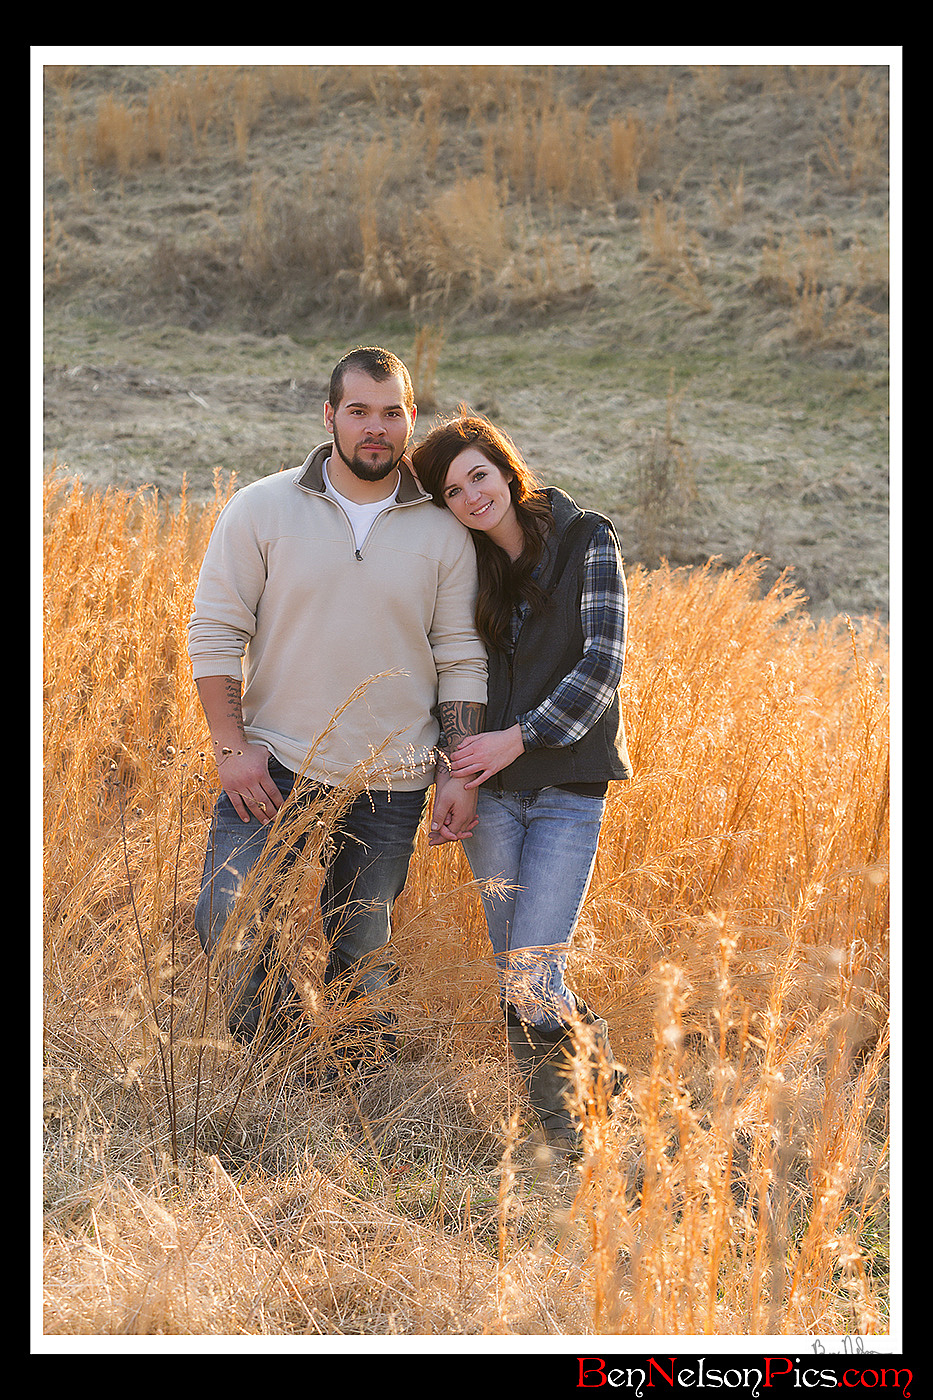 Couples Photos and Engagement Pictures in Springfield Missouri - Couples Photo Outdoors In Nature Springfield Missouri